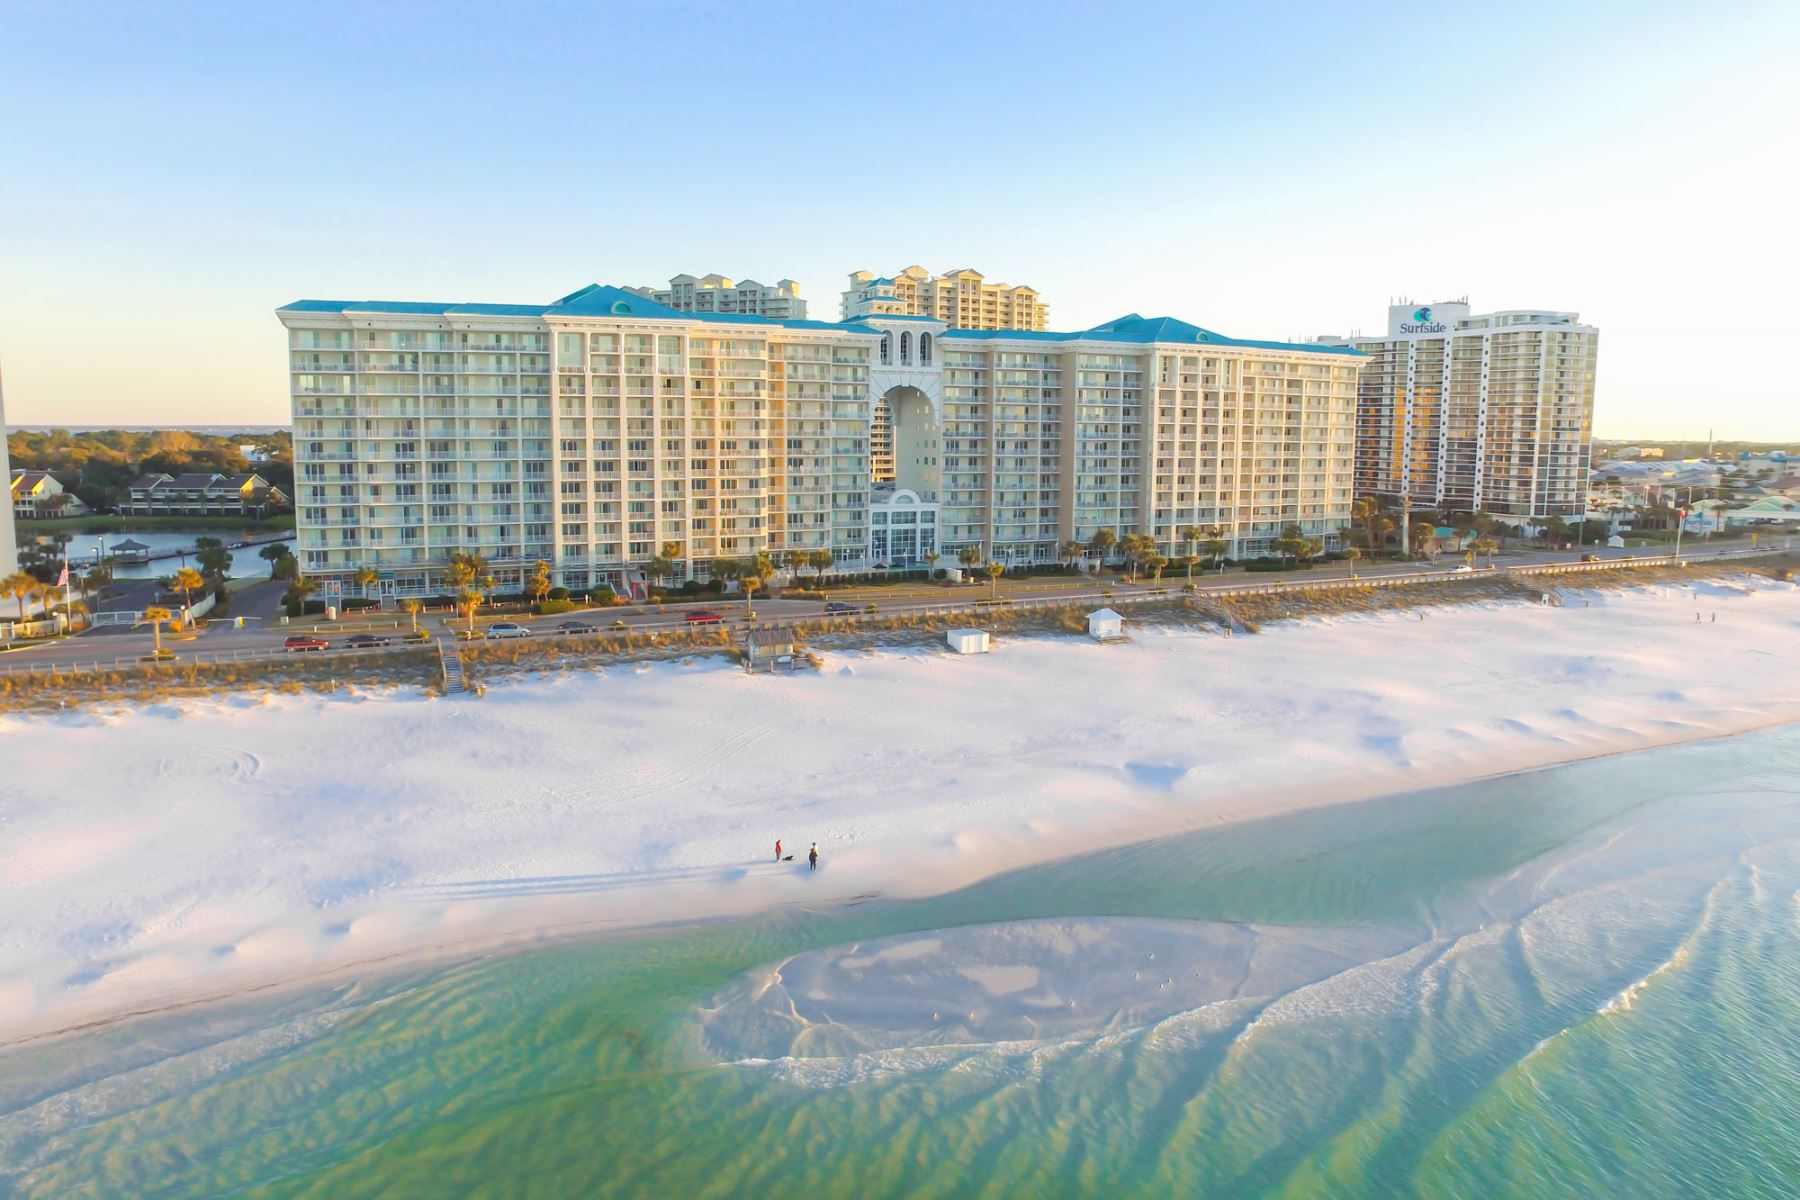 Majestic Sun Resort Destin Florida One Of S Nicest Vacation Places Every Unit Has A Full Beachfront View